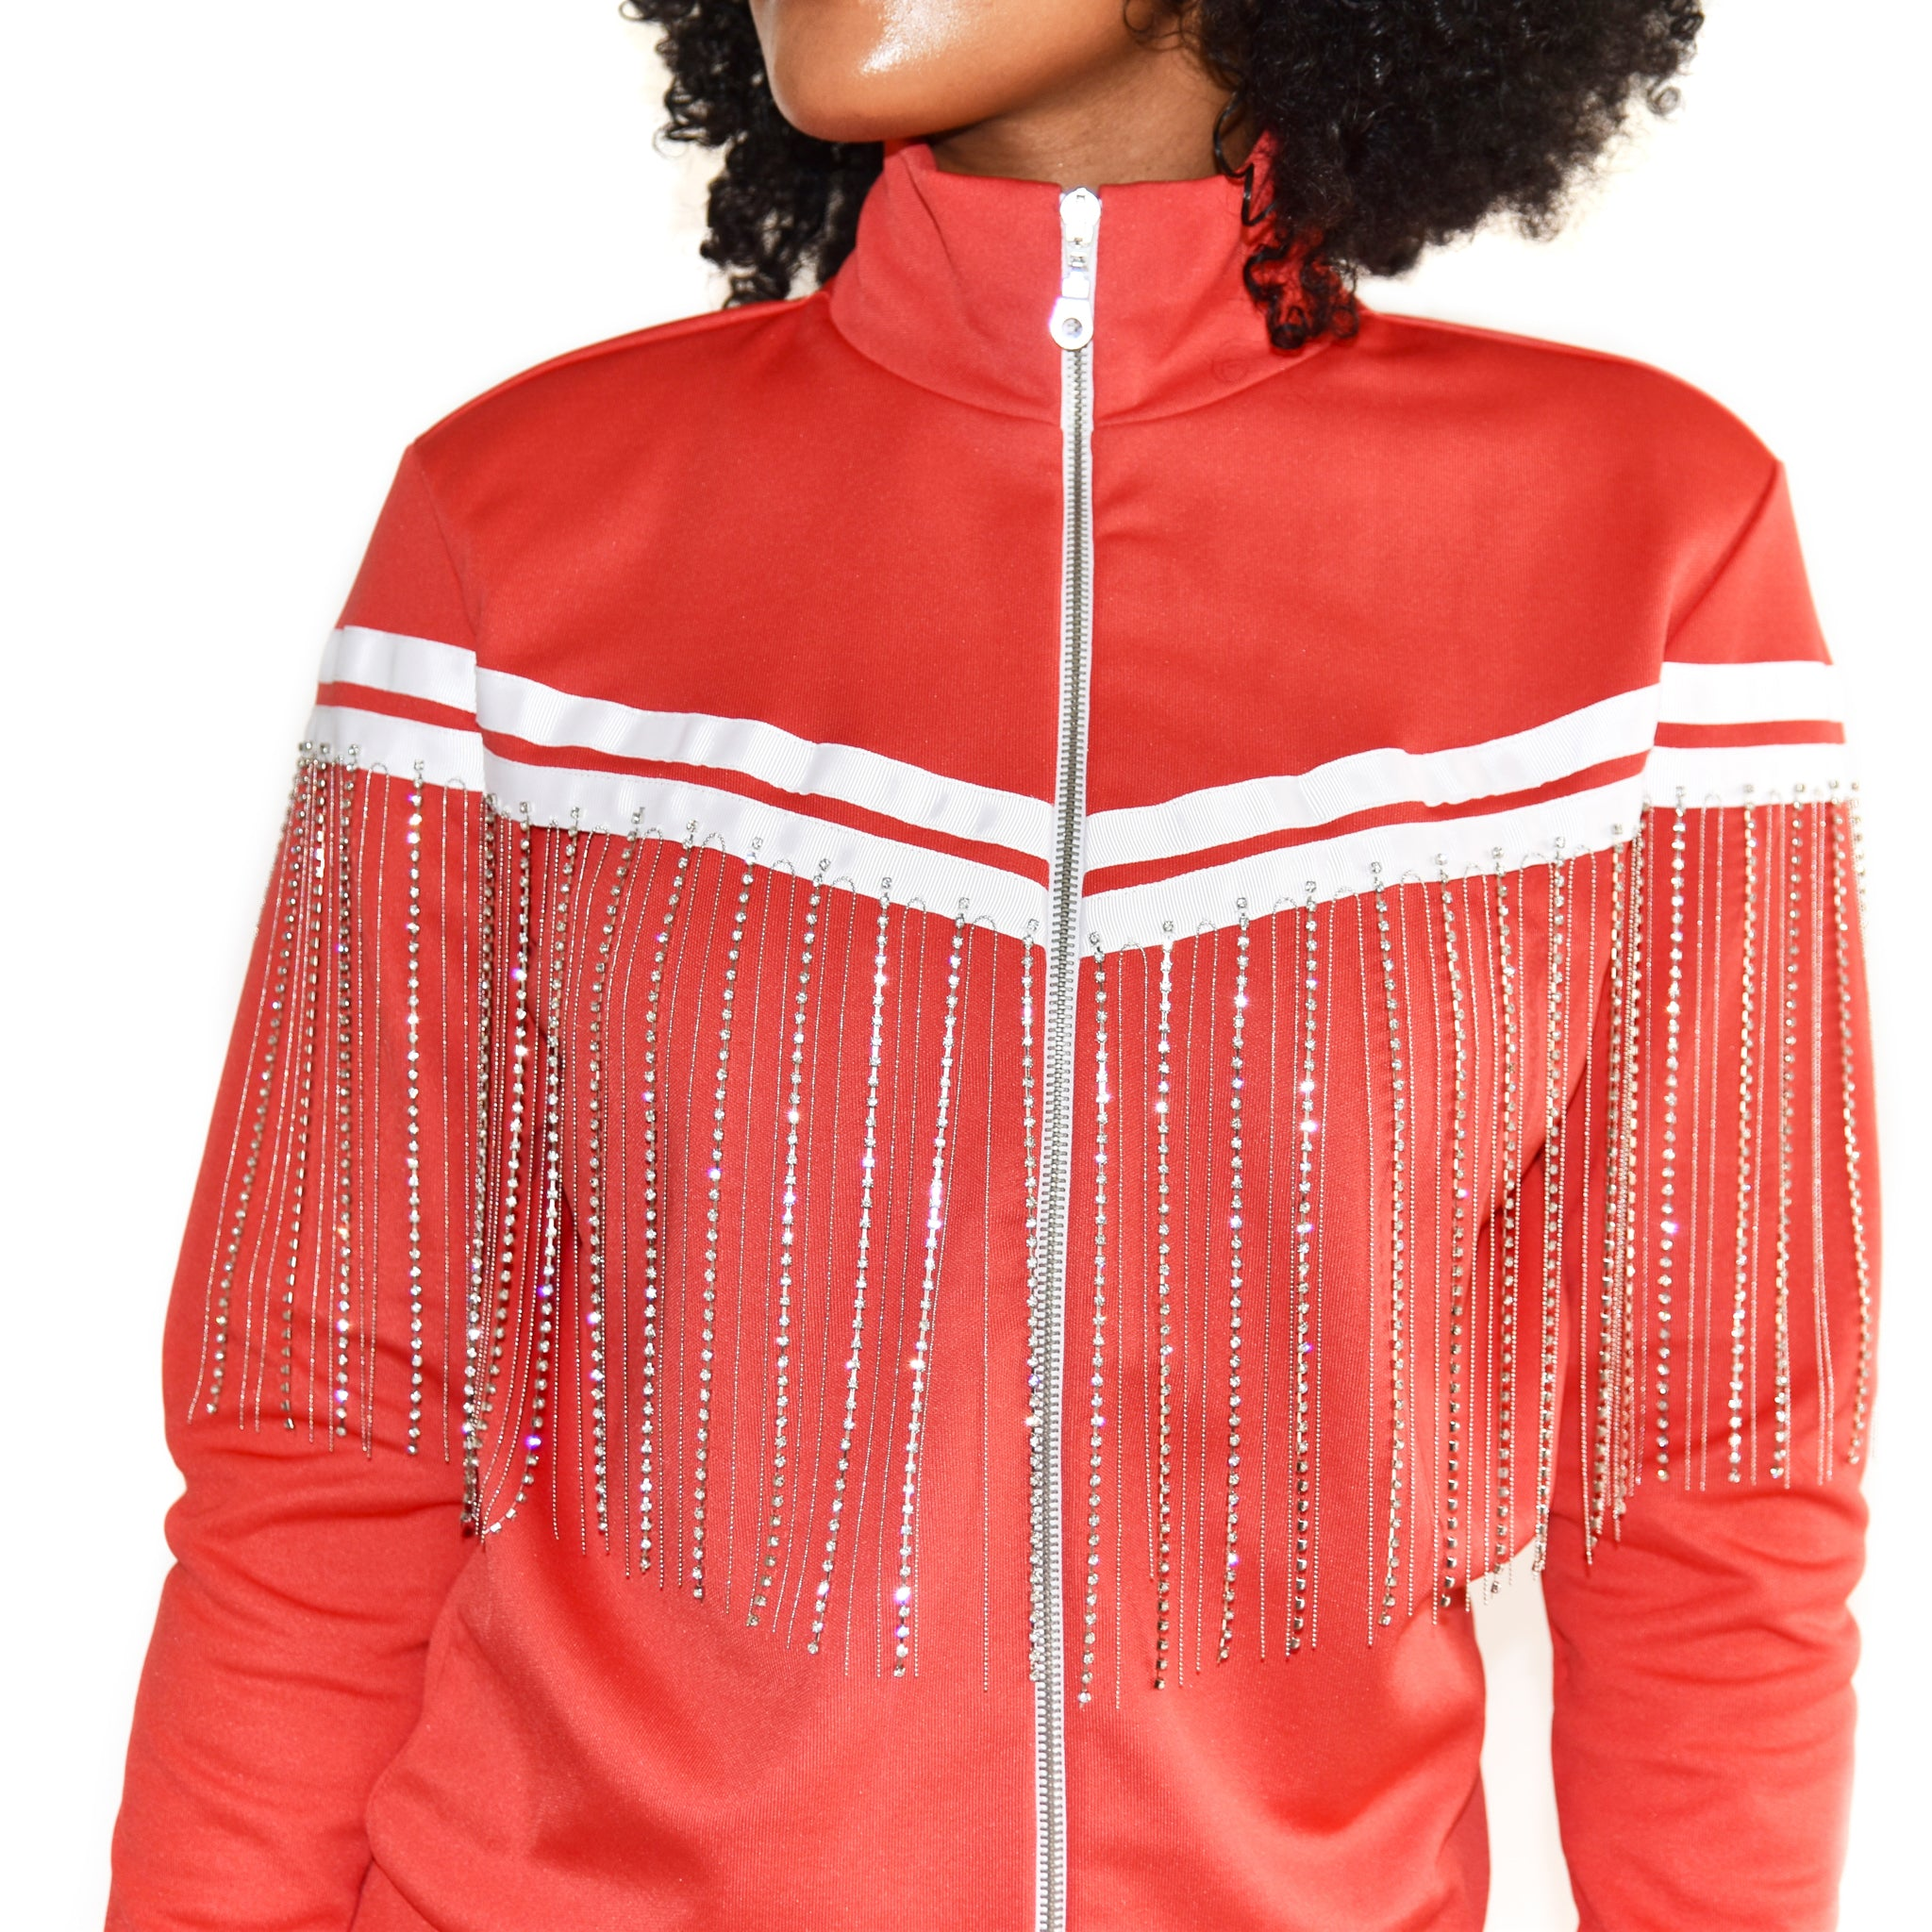 Each x Other Red Track Jacket with Diamond Fringe on Well(un)known Available at wellunknown.com